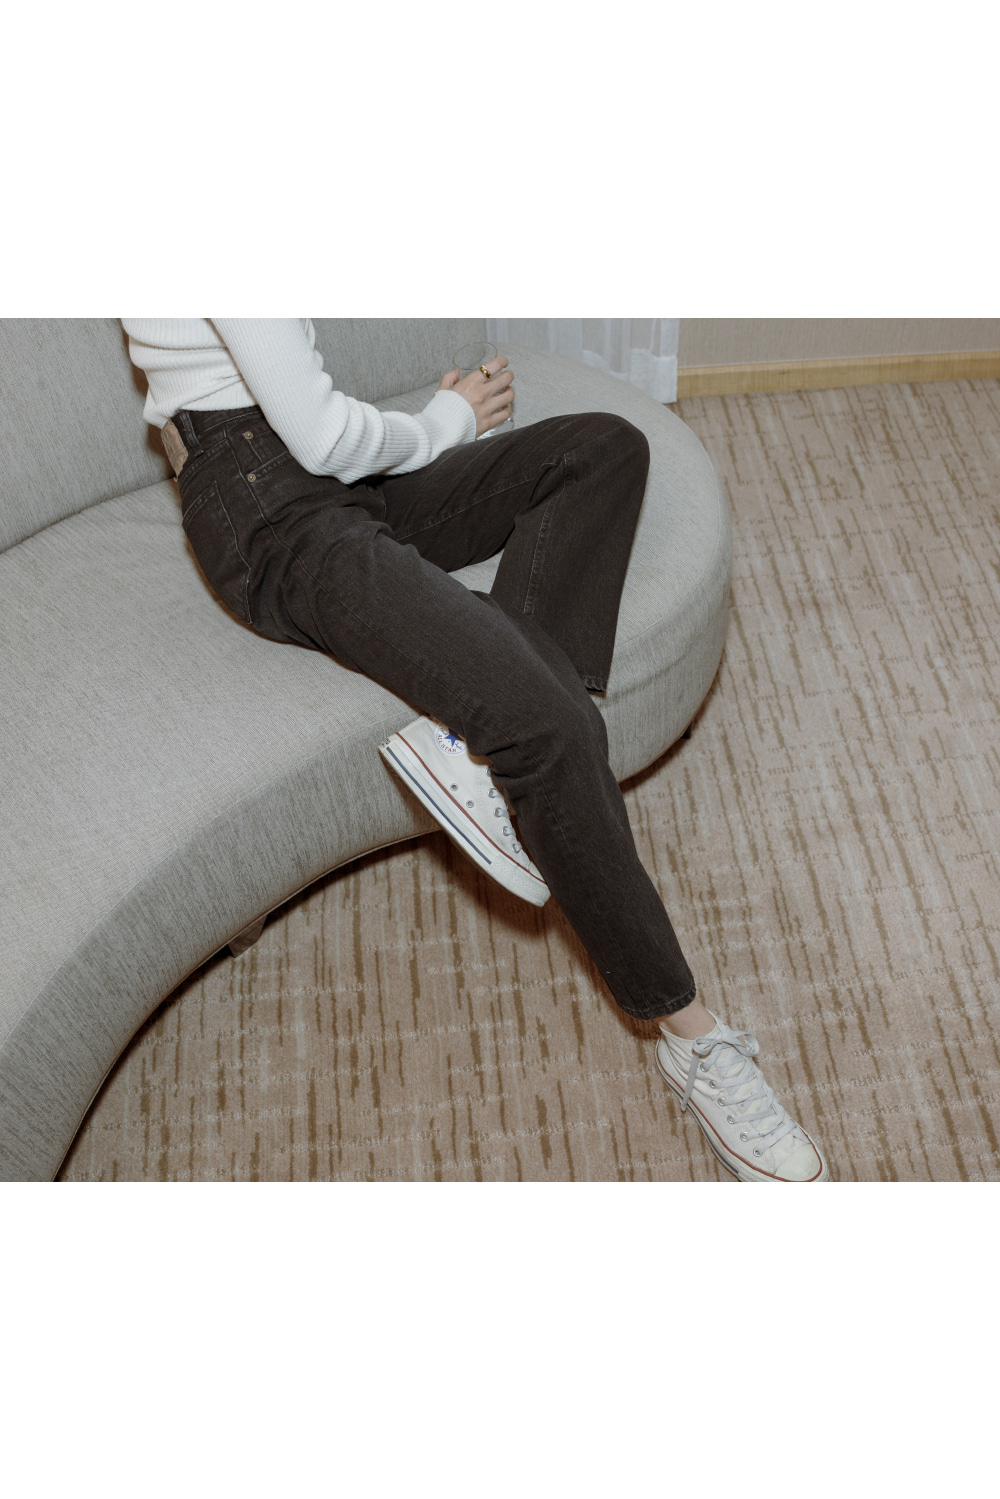 7268_SAL_black french straight-leg Jeans [ Pre- Order ] 1월말 발송예정